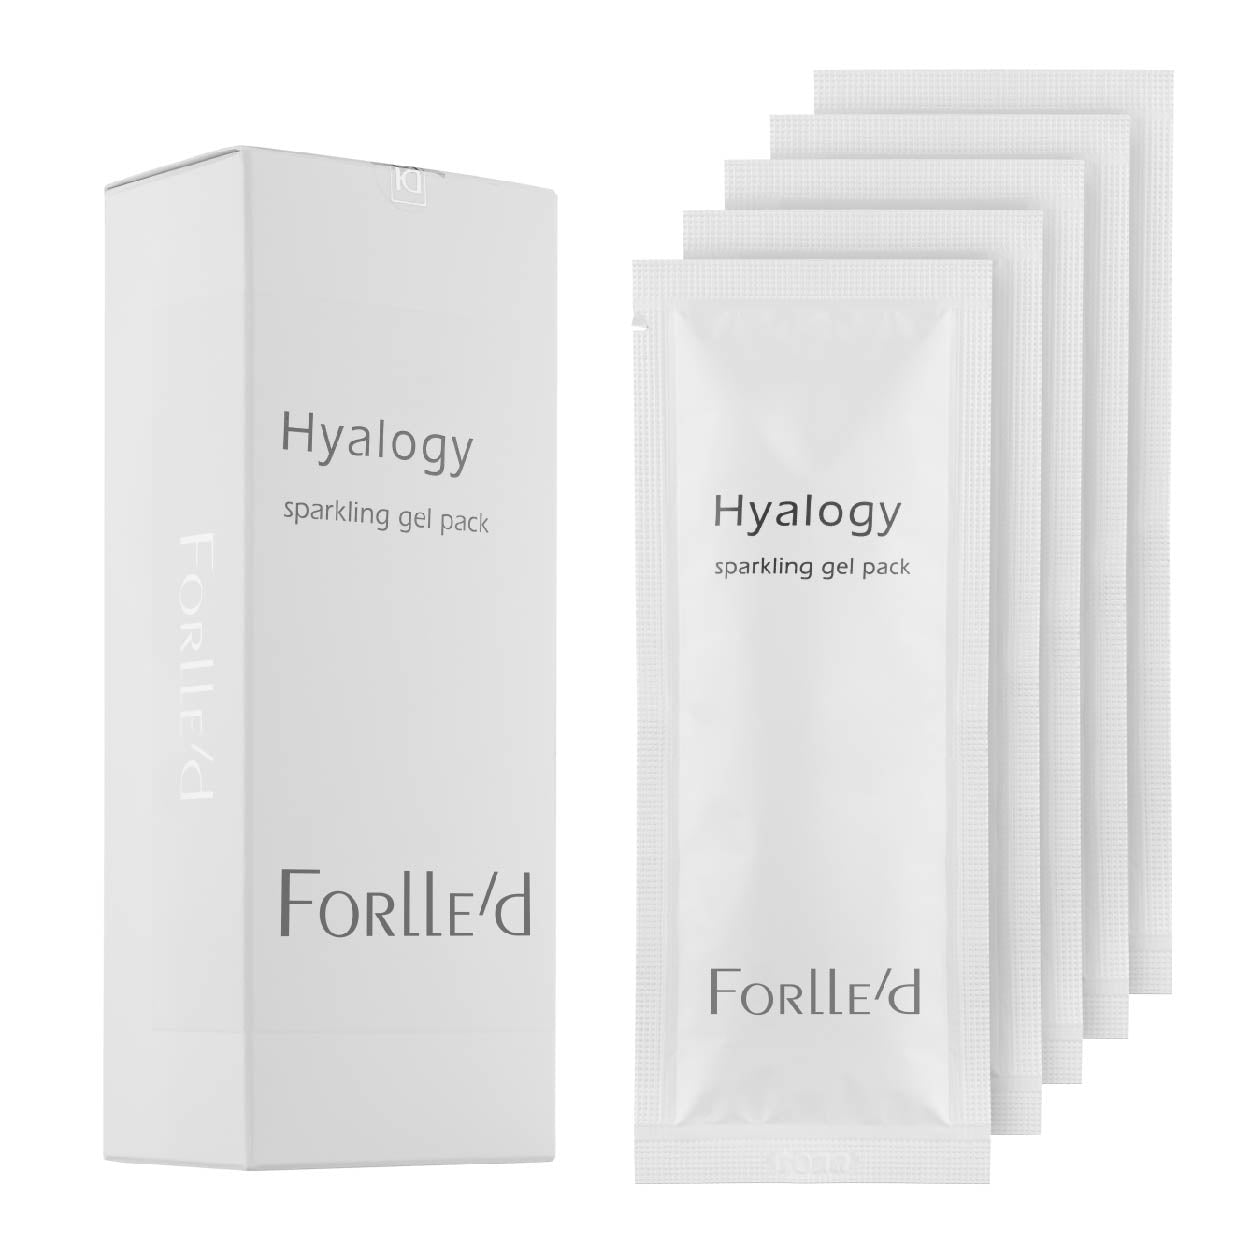 Forlle'd - Hyalogy Sparkling Gel Pack